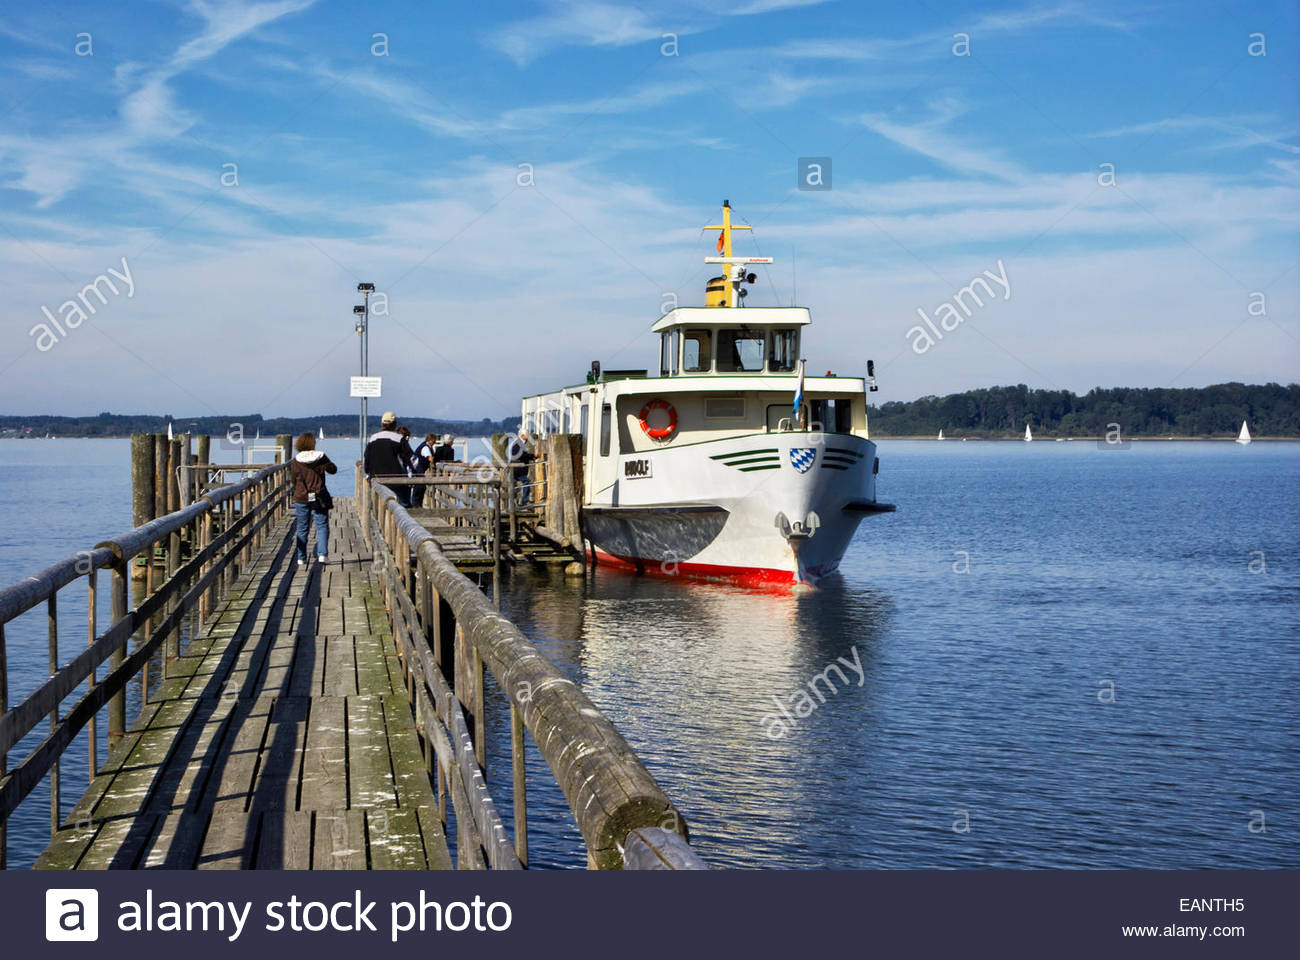 Tourists board an excursion boat for a trip to Herreninsel, an island in the Chiemsee, or Bavarian Sea, Germany. - Stock Image